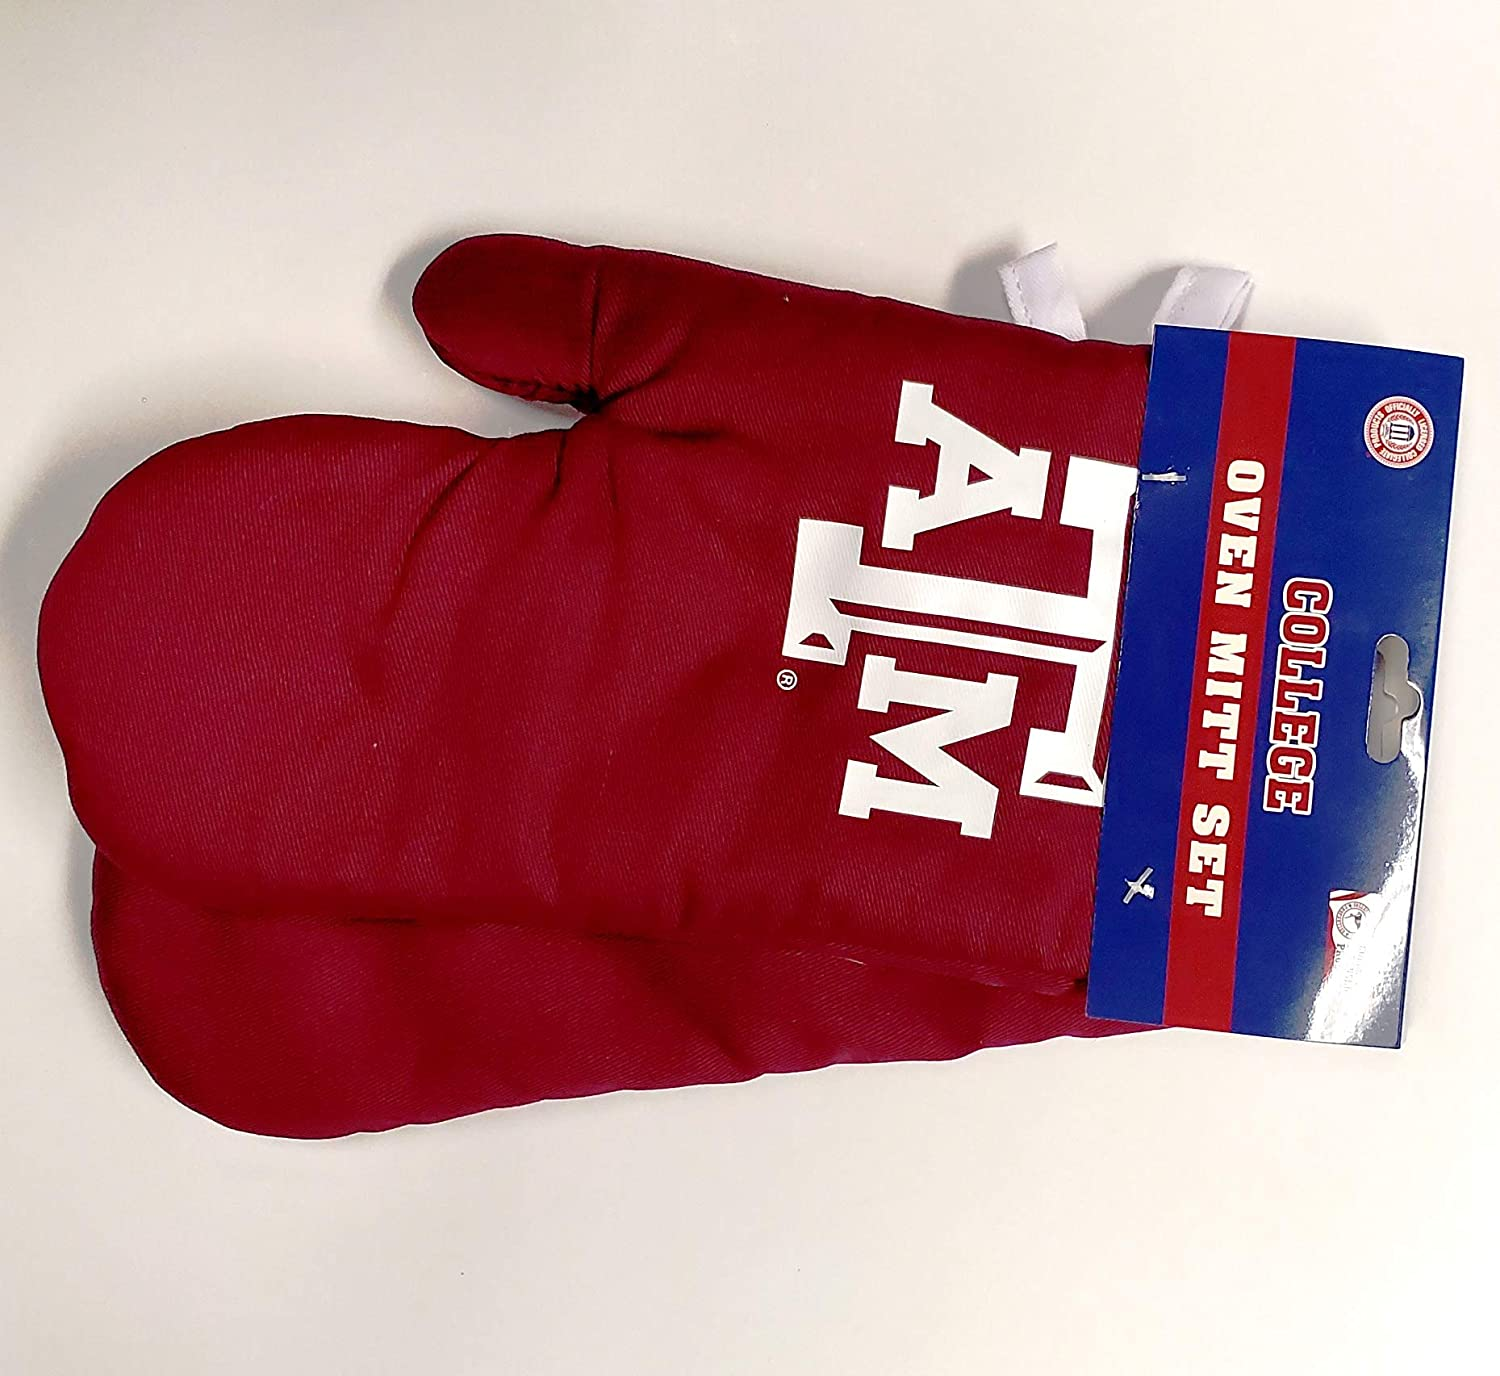 Texas A&M Aggies Oven Mitt Glove Holder Set Cooking Grilling Barbecue University